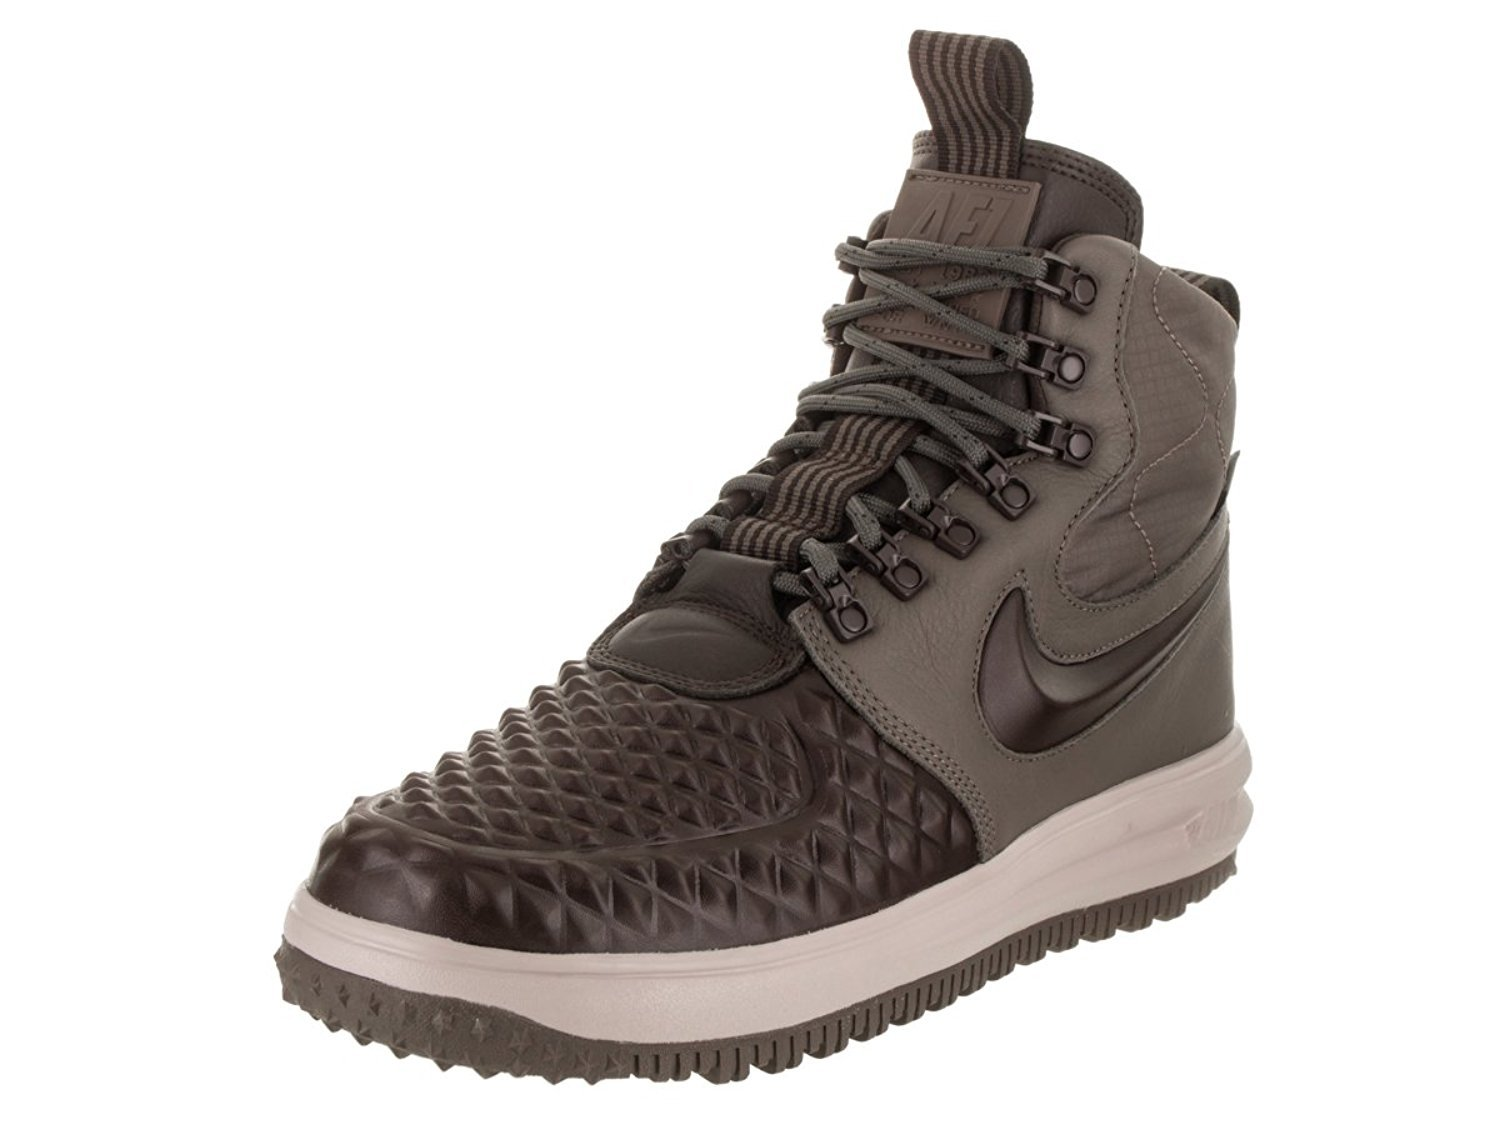 nike duckboot 17 occasionnel hommes chaussures ef1 anatoxine tétanique tétanique tétanique 7bfd00